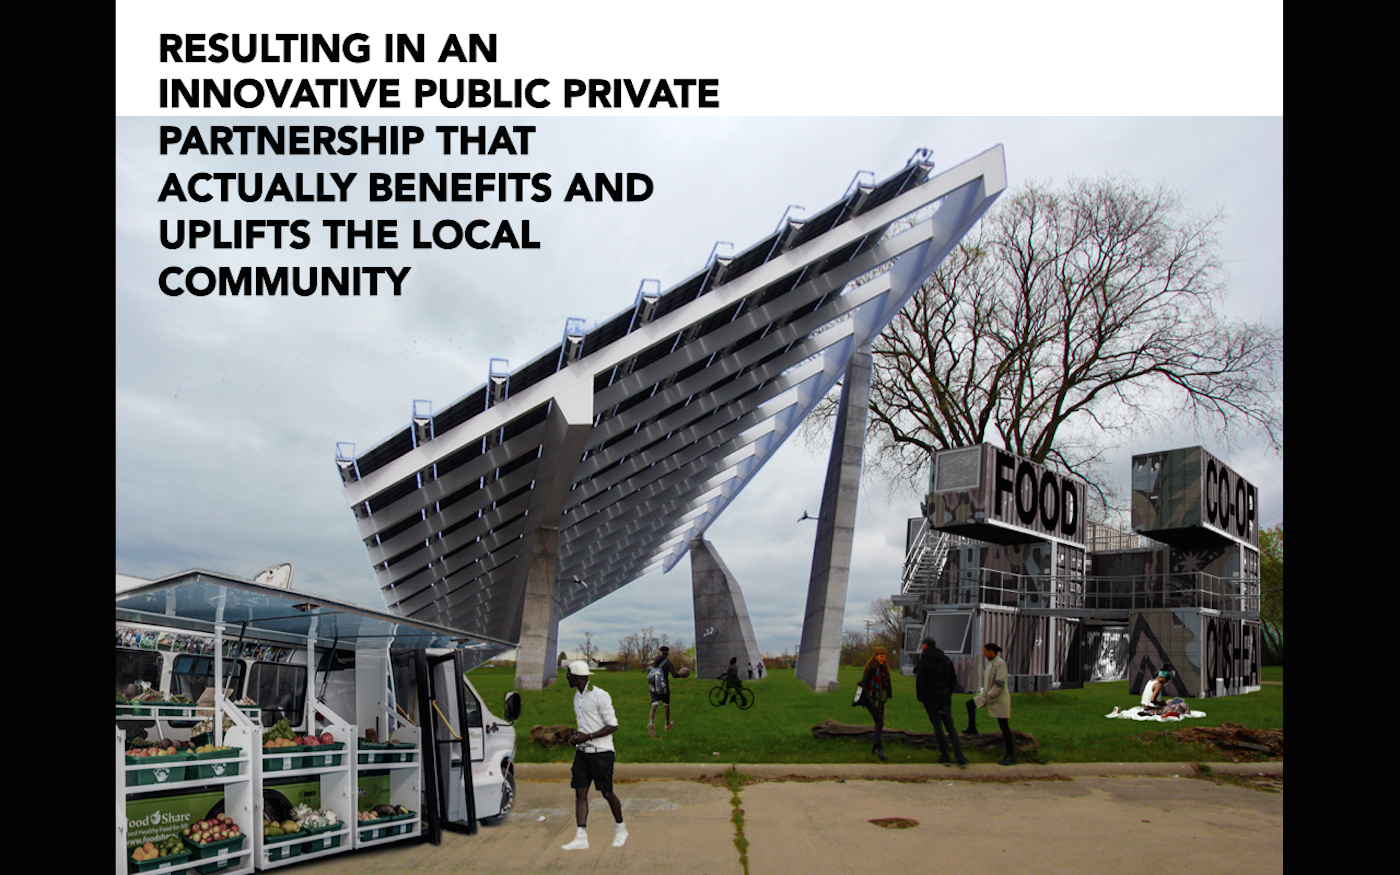 Slide from our group presentation on a cooperative food store with solar panel roof in the O'Shea neighborhood of Detroit (image courtesy Unai Reglero)